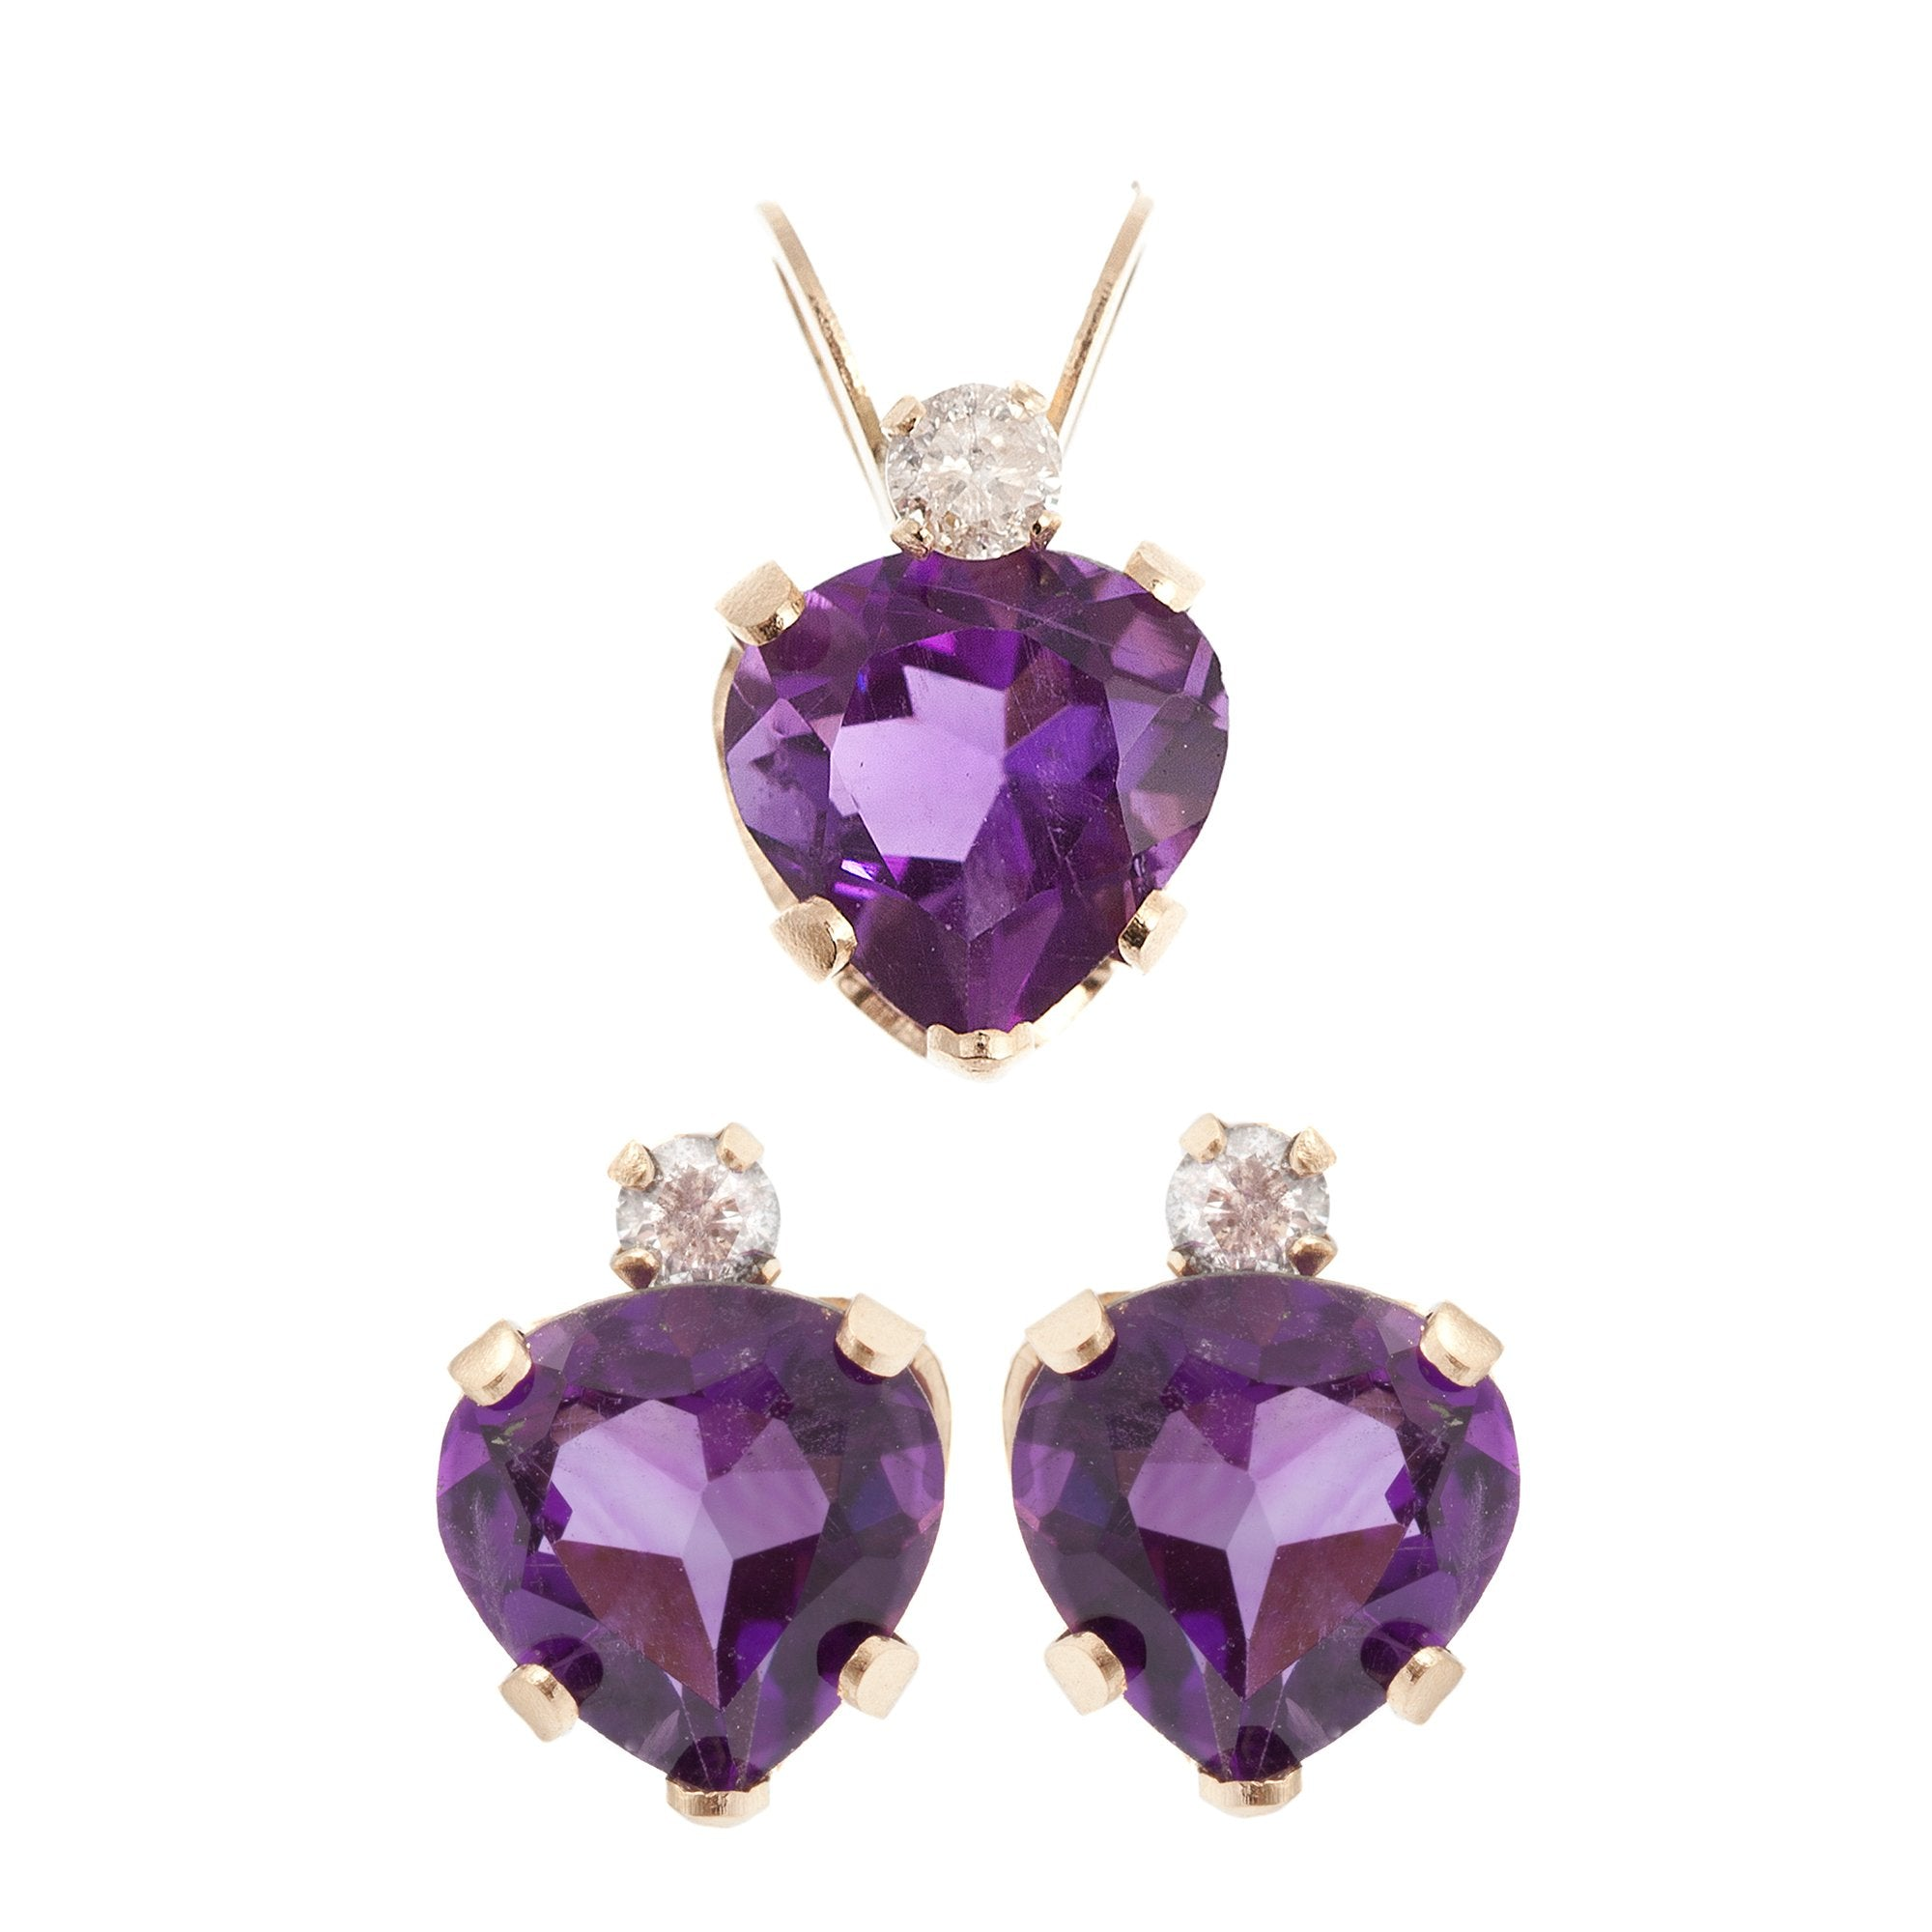 10KT Yellow Gold Genuine Amethyst Heart shaped Pendant and Earrings Set